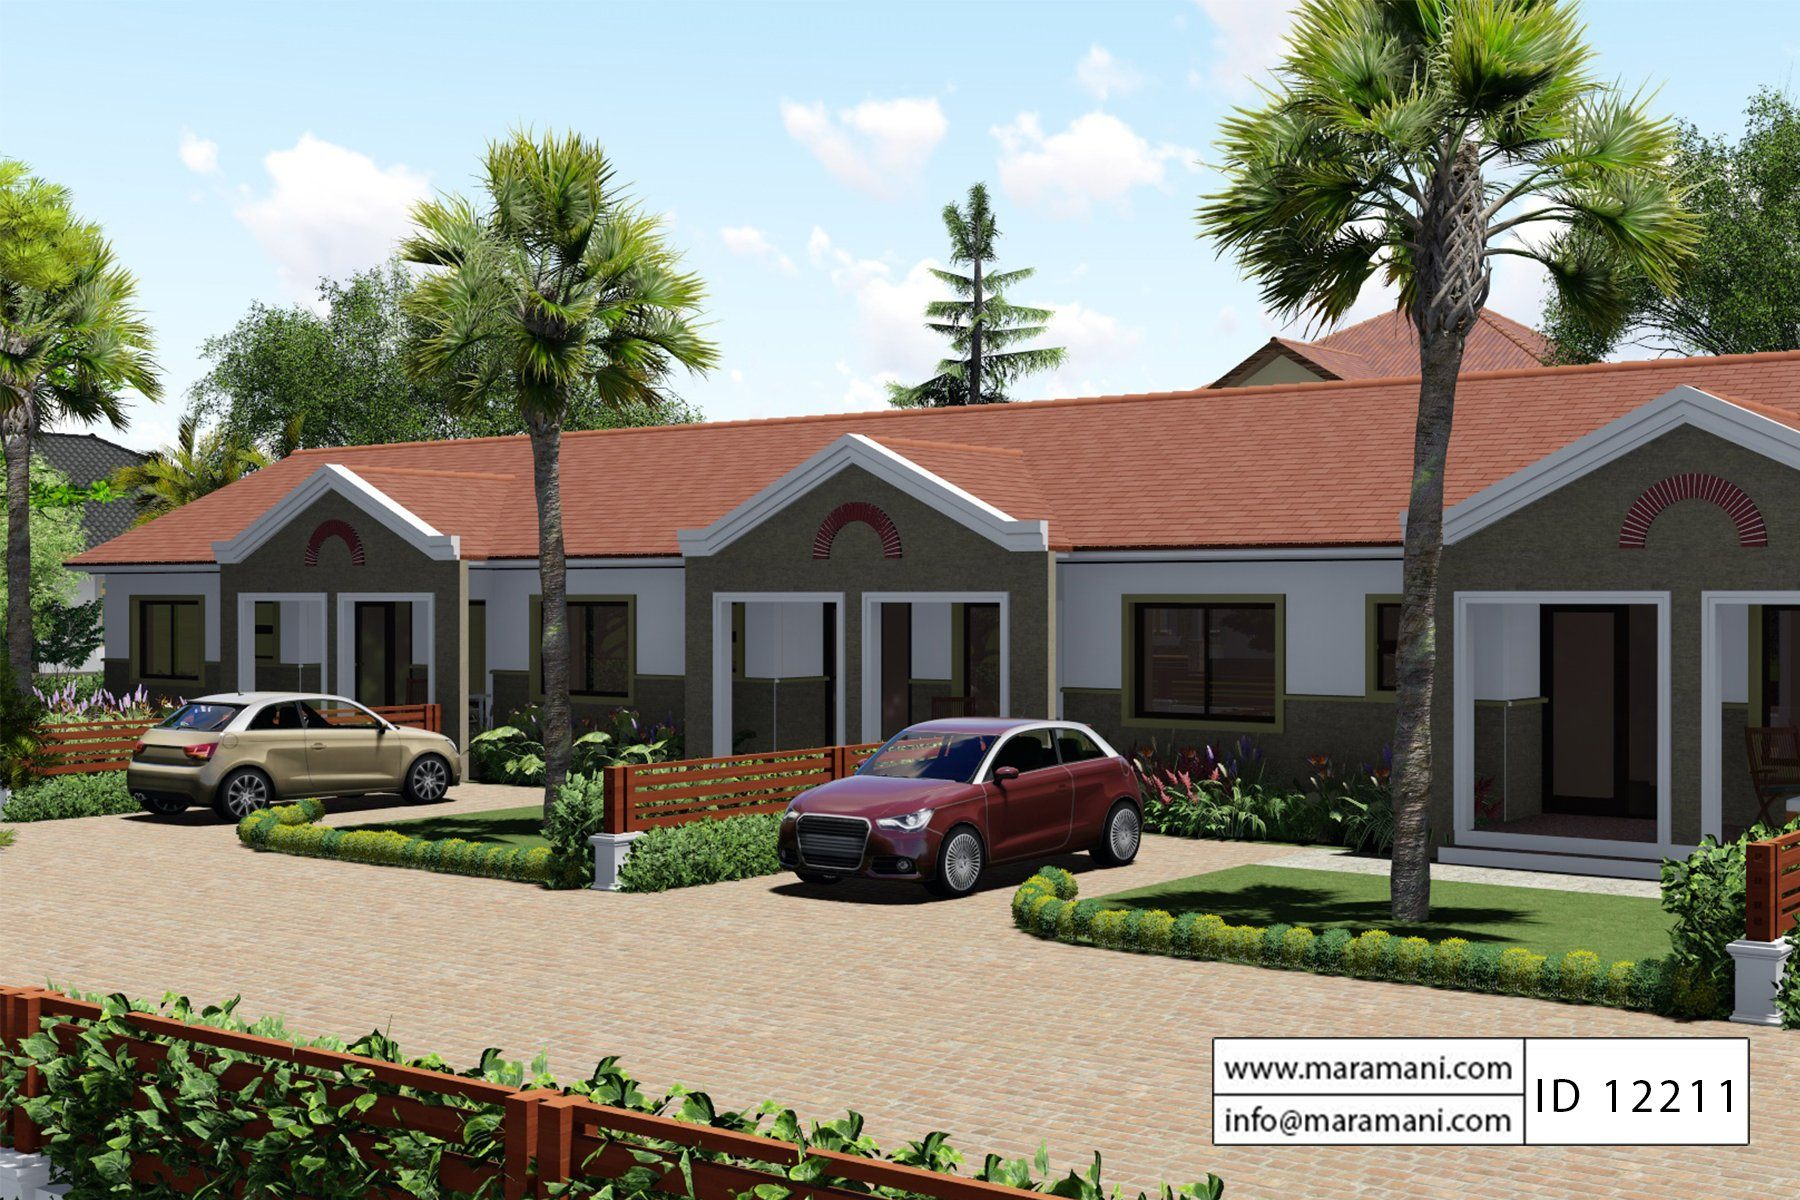 House plans and designs in kenya house plan 2017 for Home designs kenya